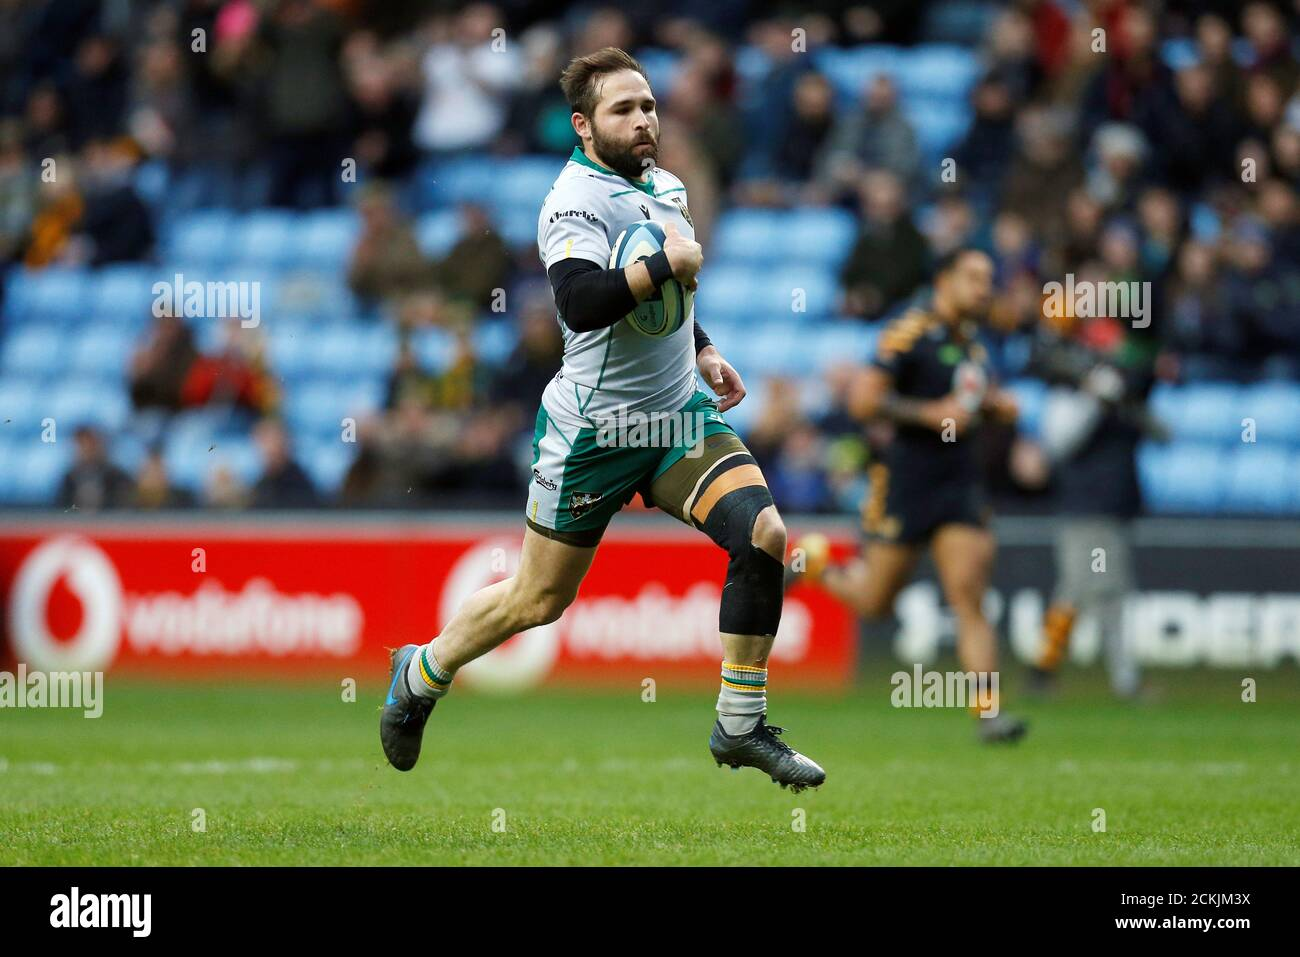 Rugby Union - Premiership - Wasps v Northampton Saints - Ricoh Arena, Coventry, Britain - January 5, 2020  Northampton Saints' Cobus Reinach scores their first try   Action Images/Ed Sykes Stock Photo